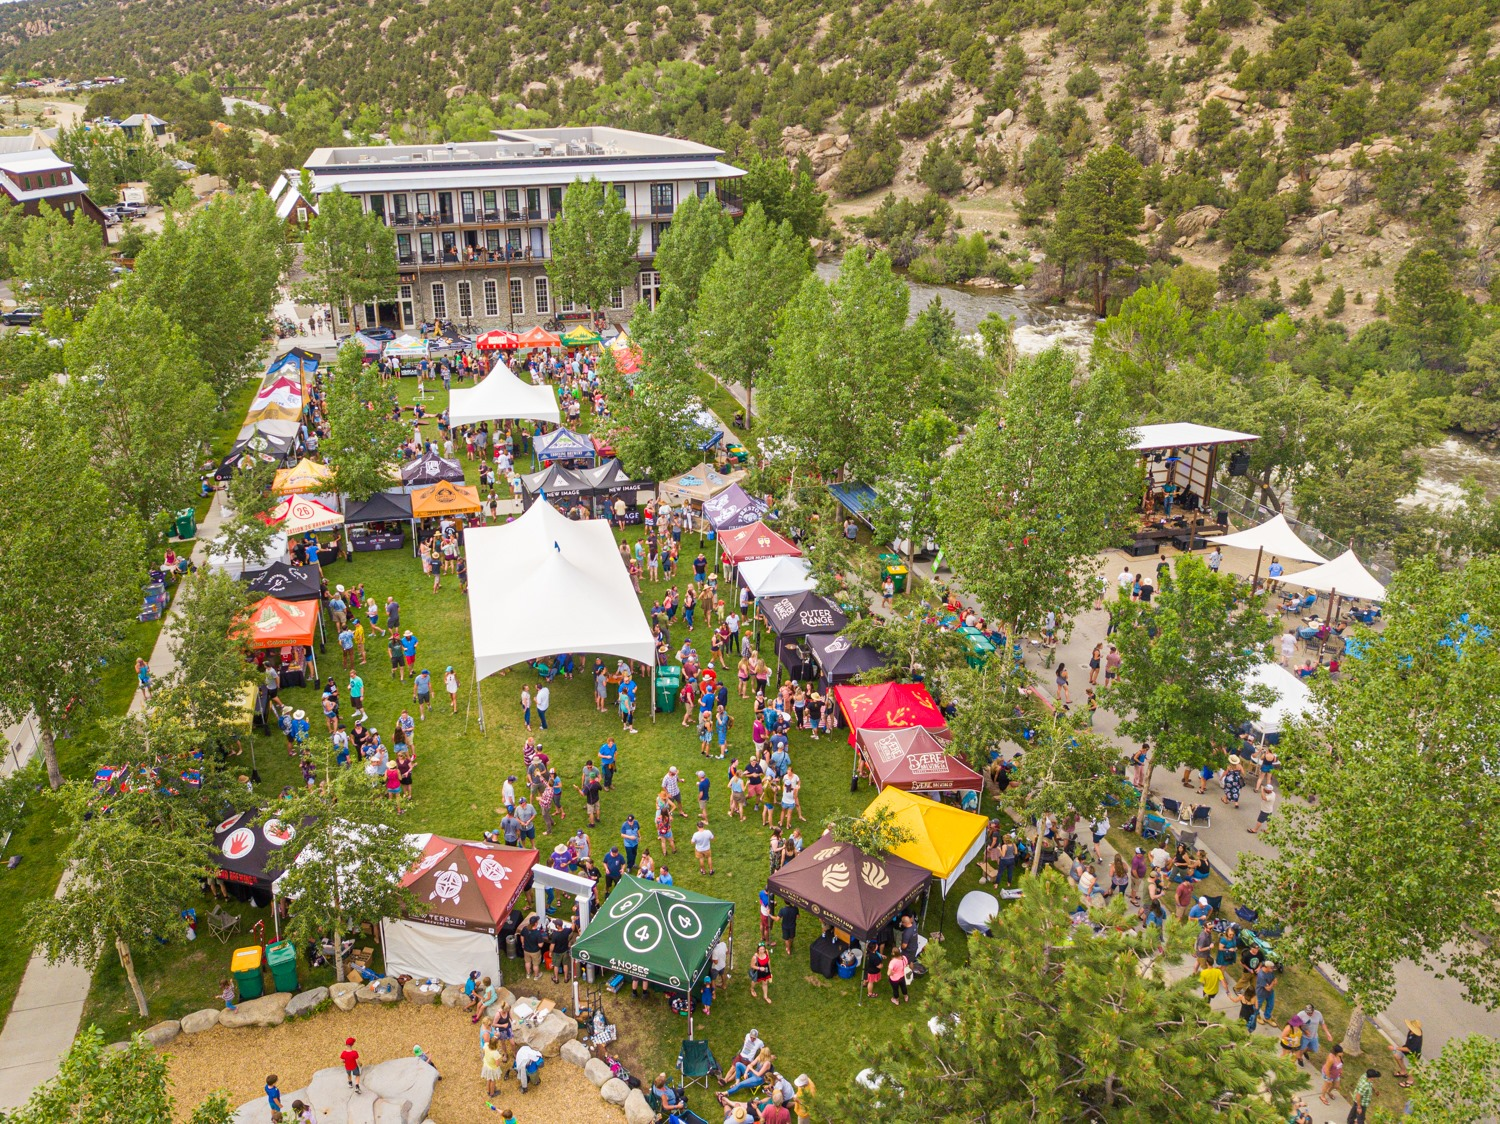 Image of the Rapids and Grass Beer Fest in Buena Vista, Colorado